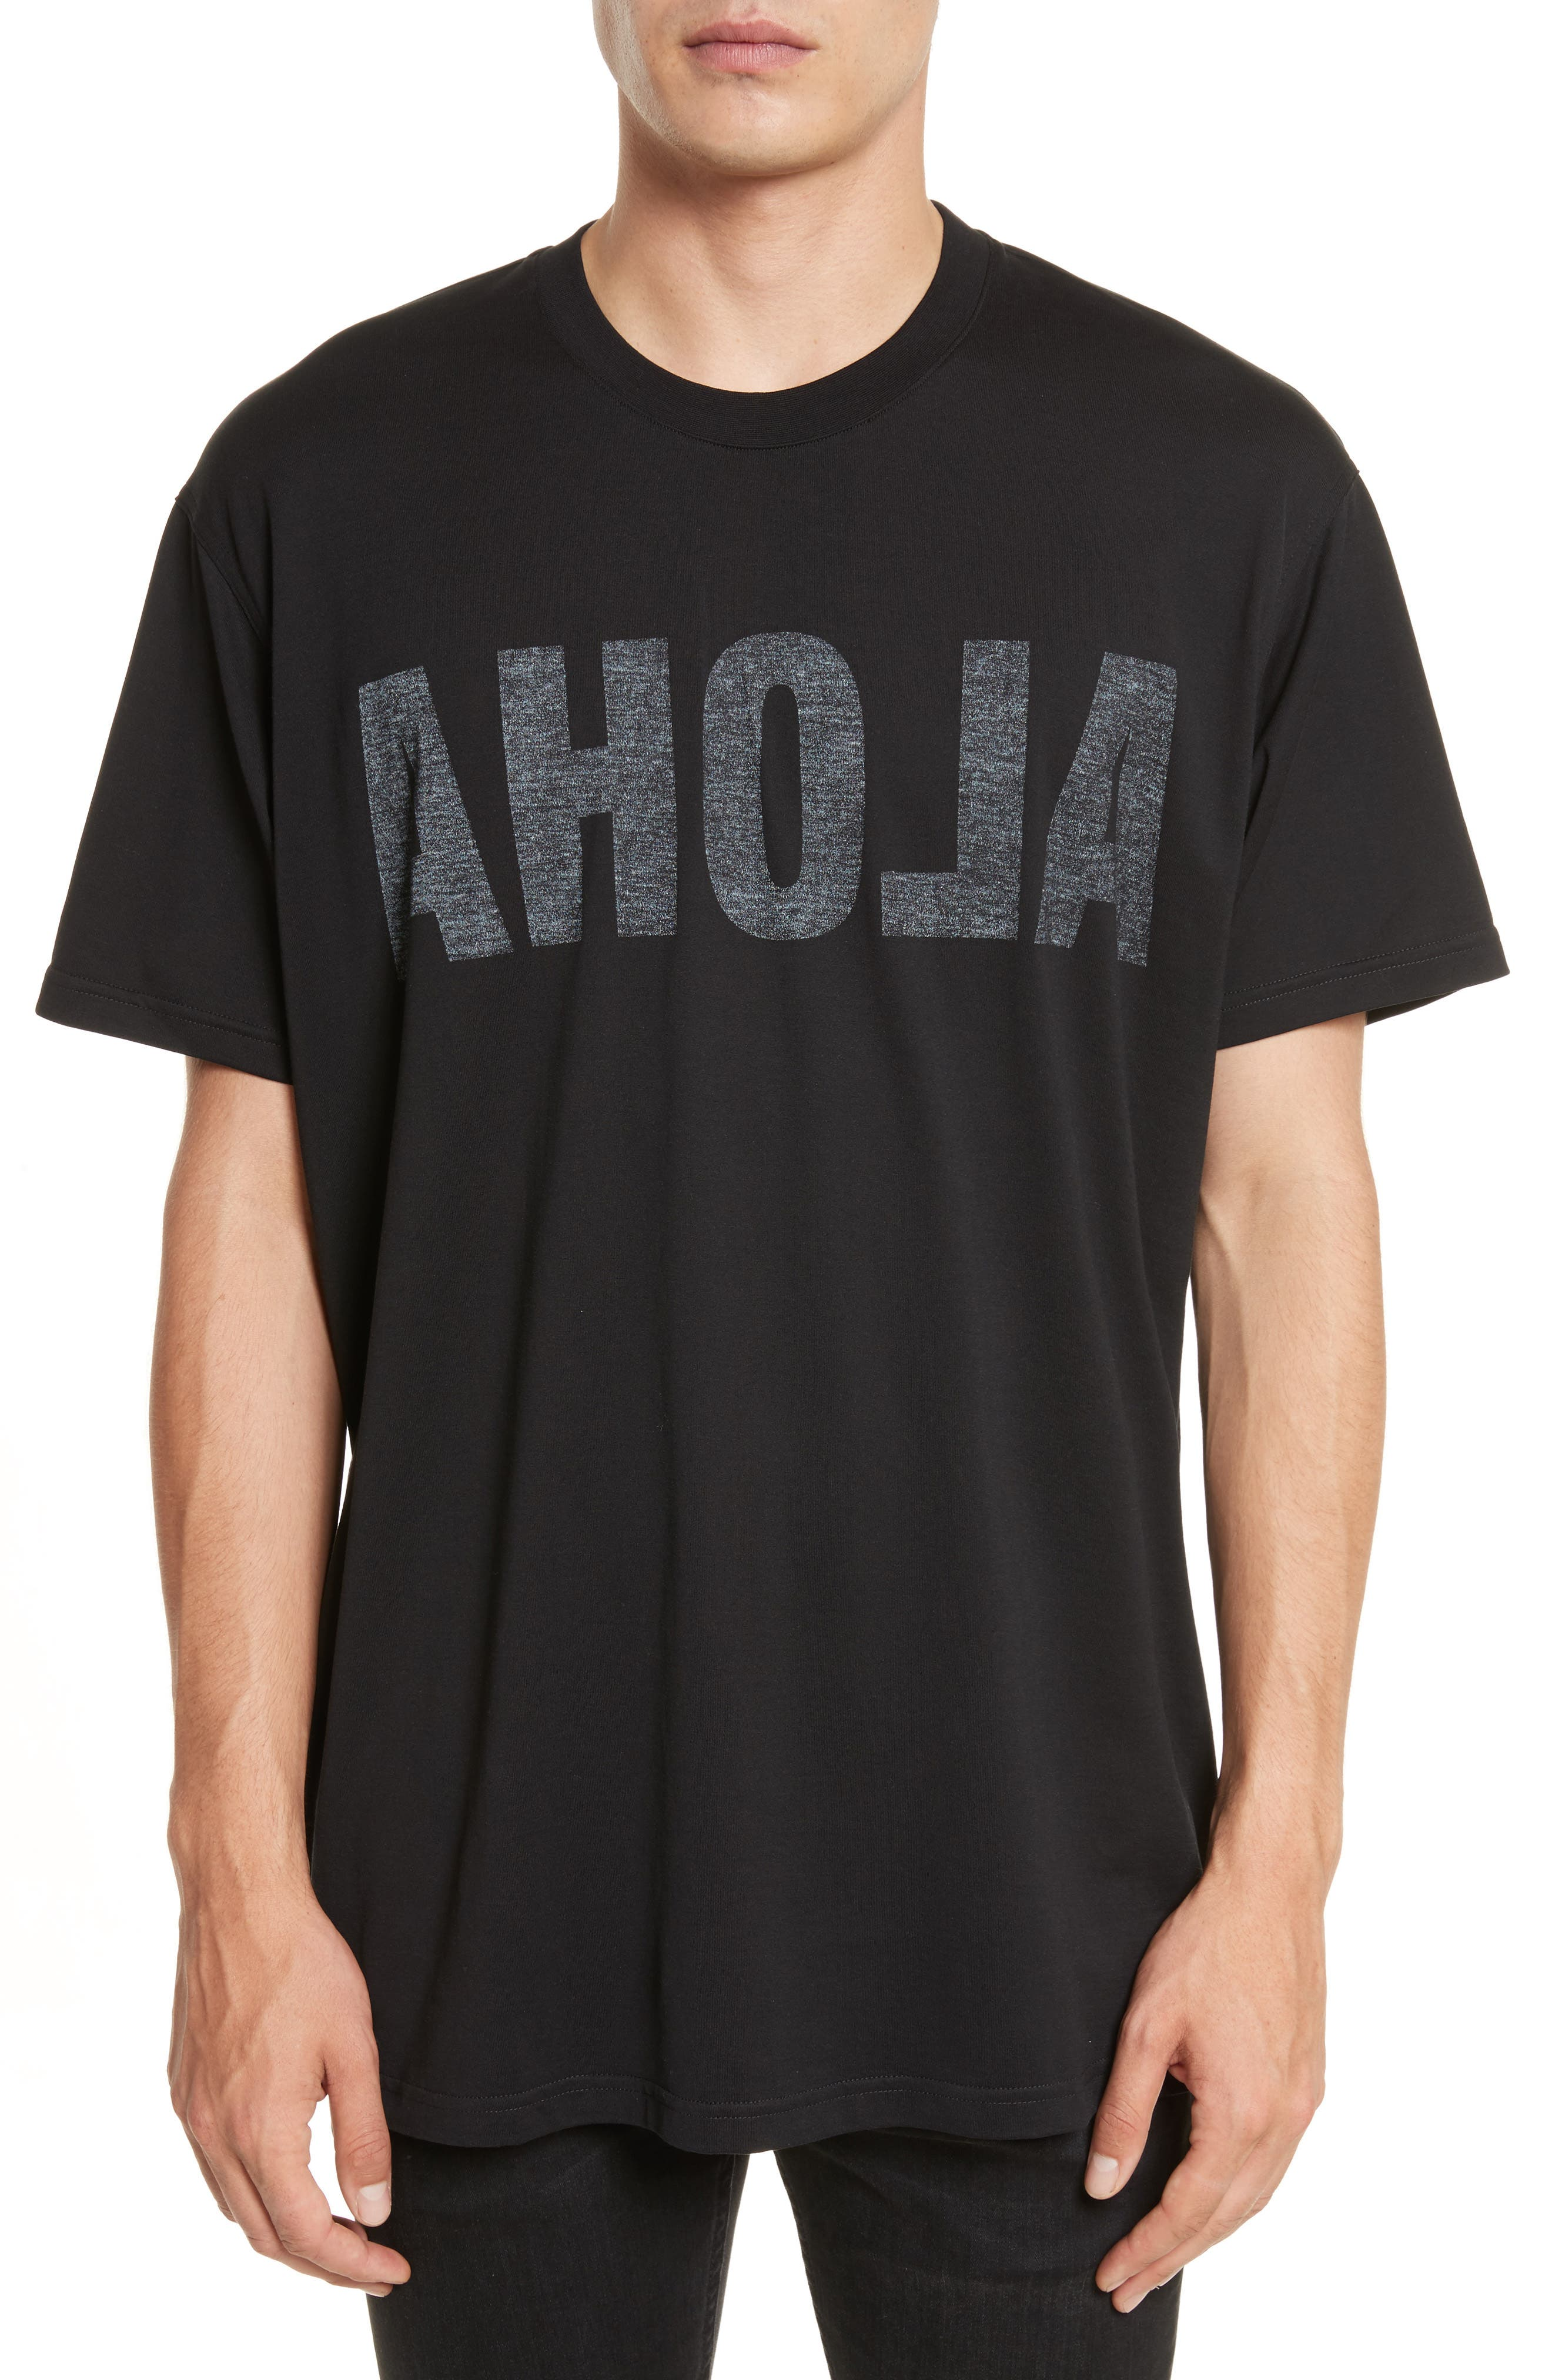 Alternate Image 1 Selected - Givenchy Columbian Fit Aloha Graphic T-Shirt